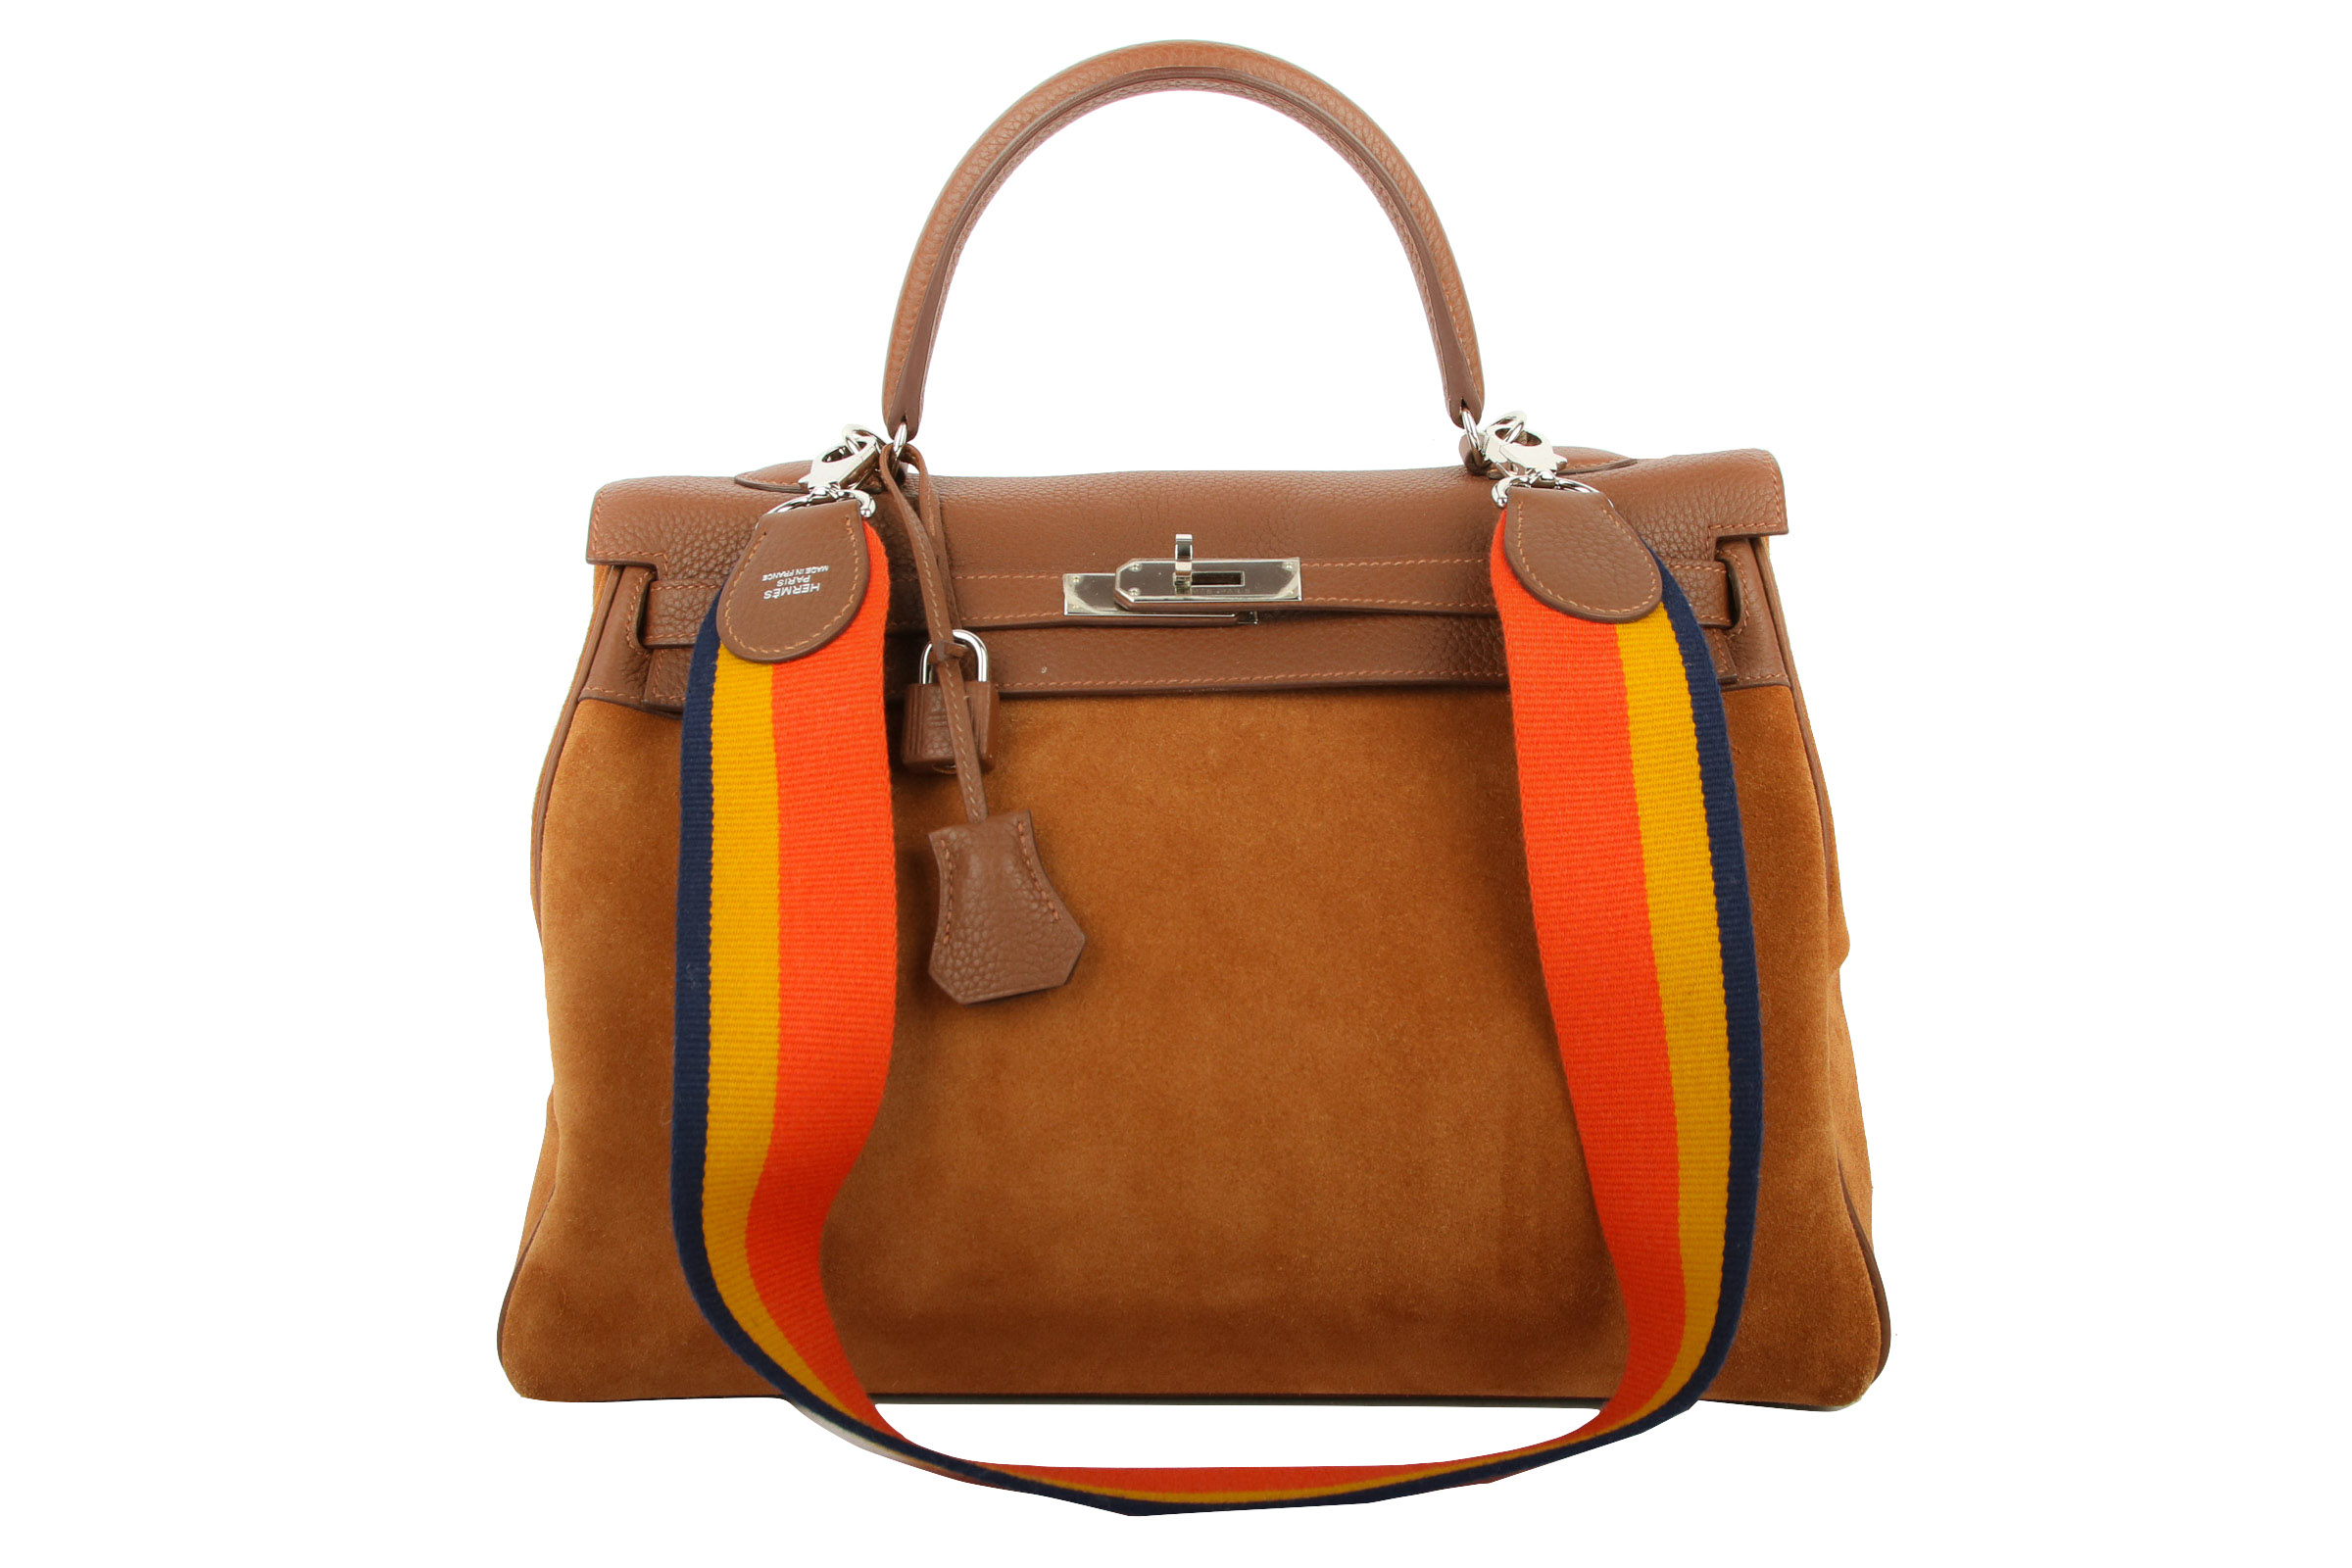 96b9e80505dcc Hermès Kelly Bag 35 Fauve Grizzly Amazone Rainbow Strap